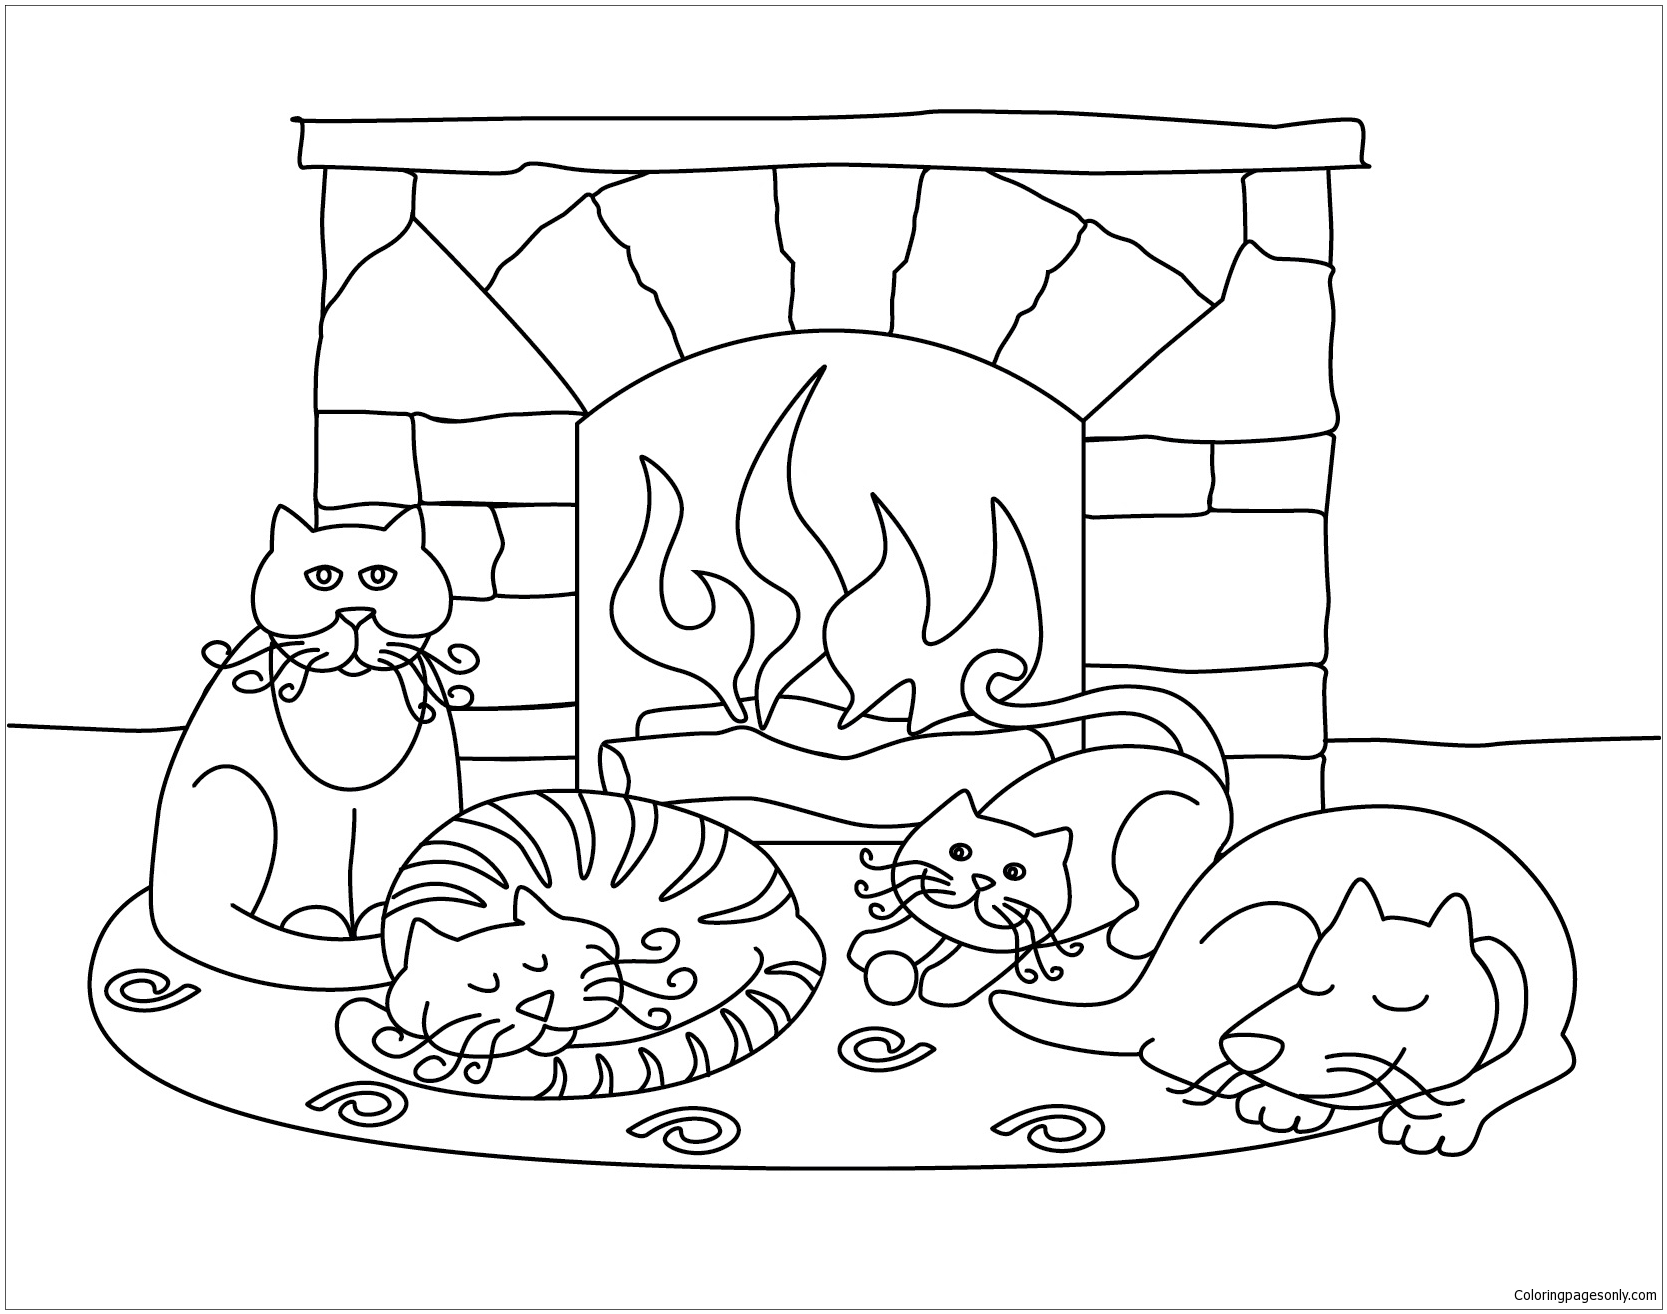 Winter Scenes With Cute Animals Coloring Page - Free Coloring Pages ...